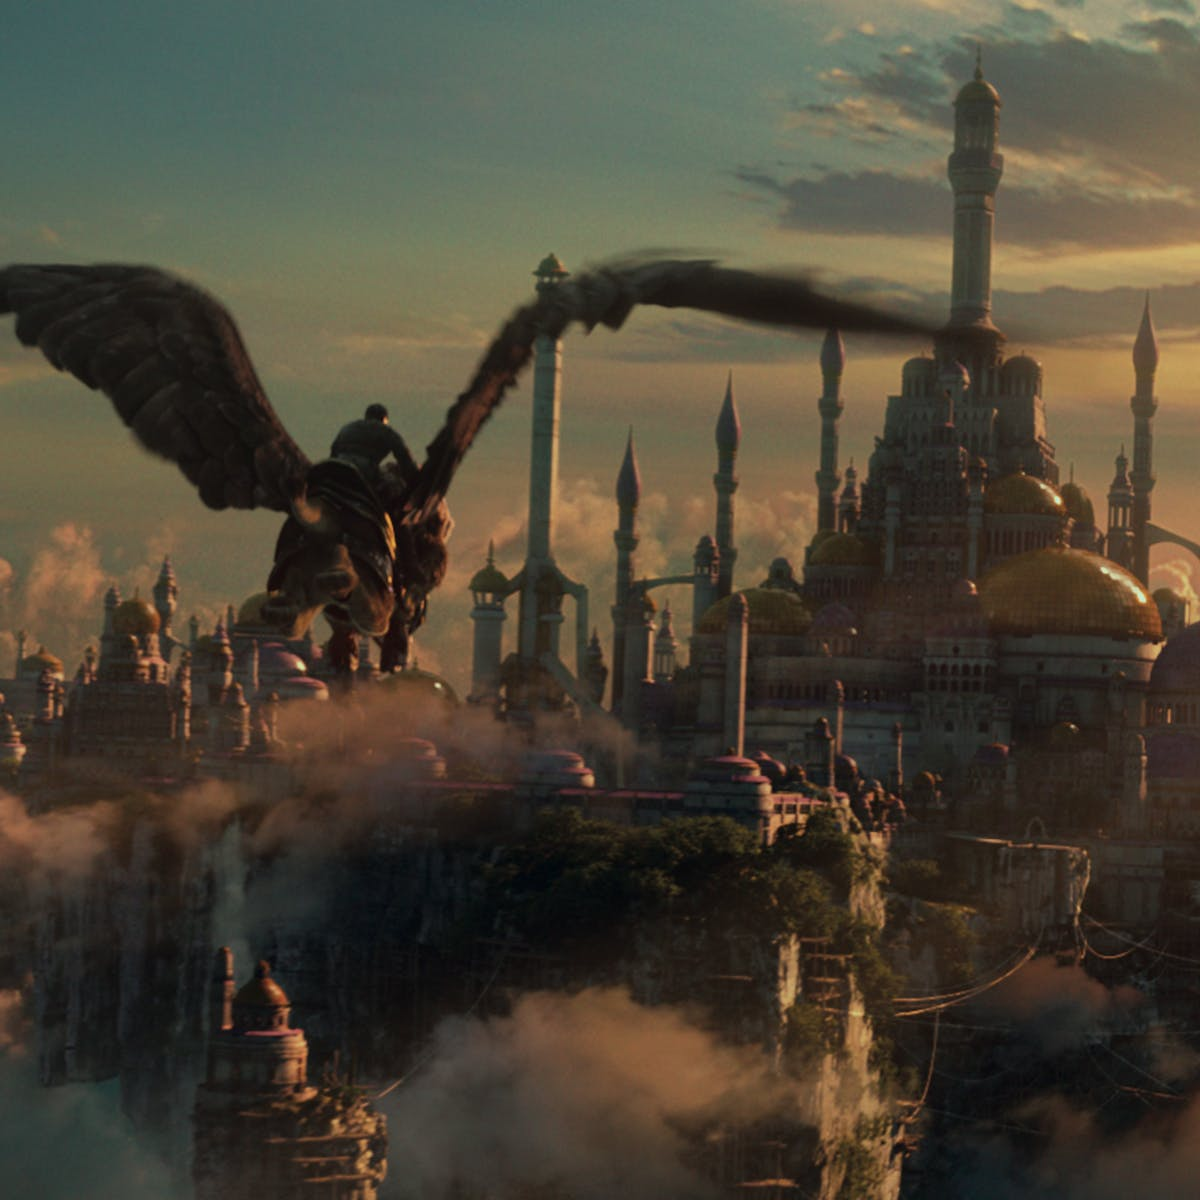 Watching Warcraft: The Beginning is a lesson in real world